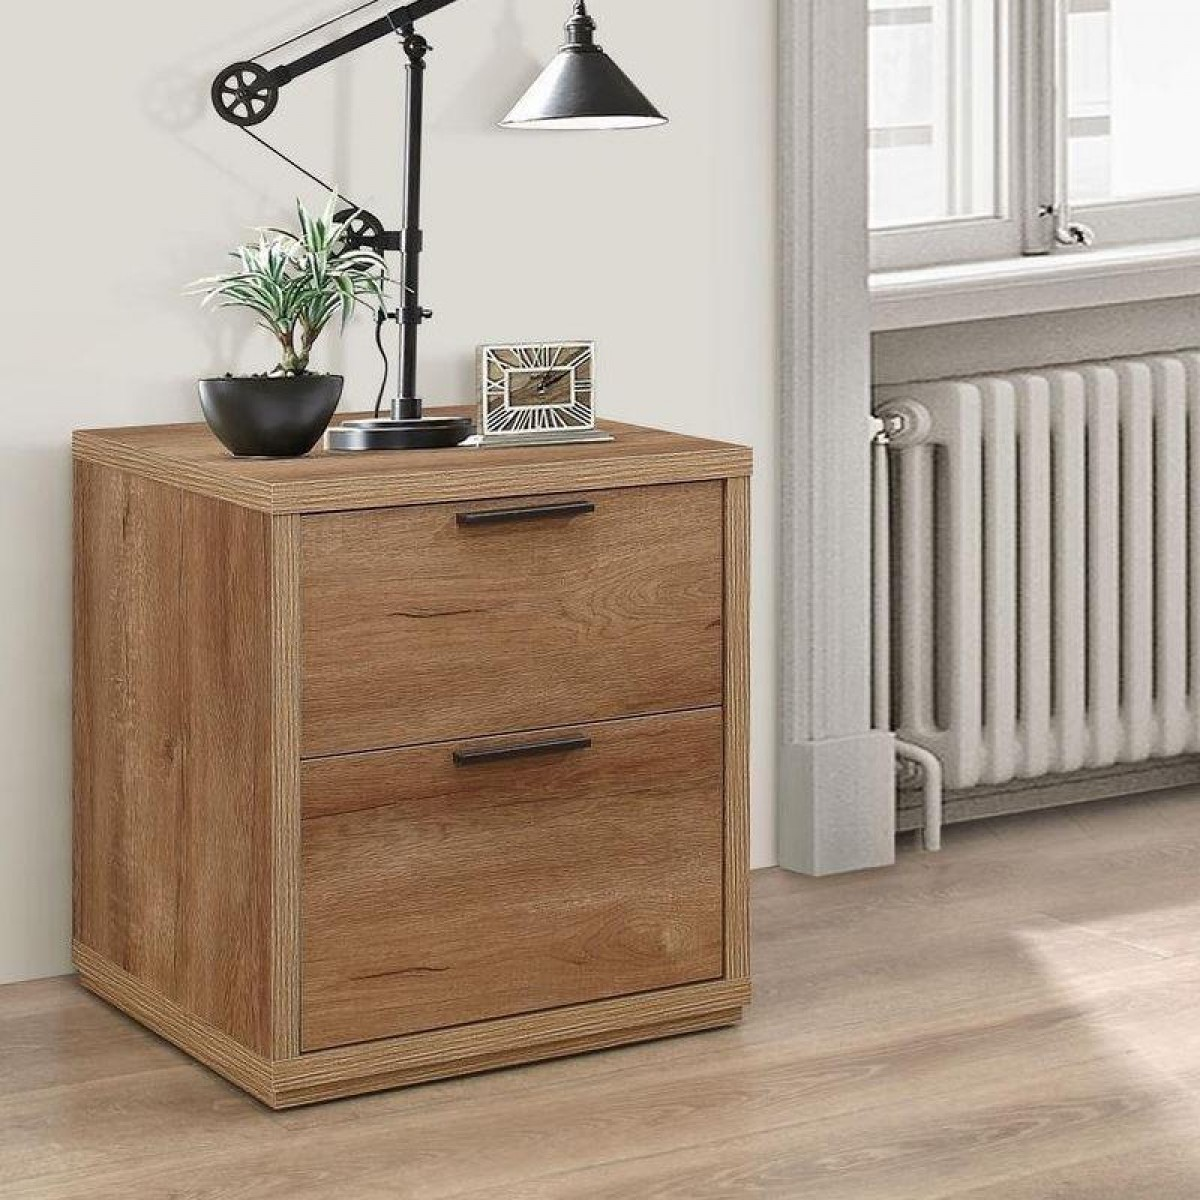 Stockwell Rustic Oak Wooden 2 Drawer Bedside Table